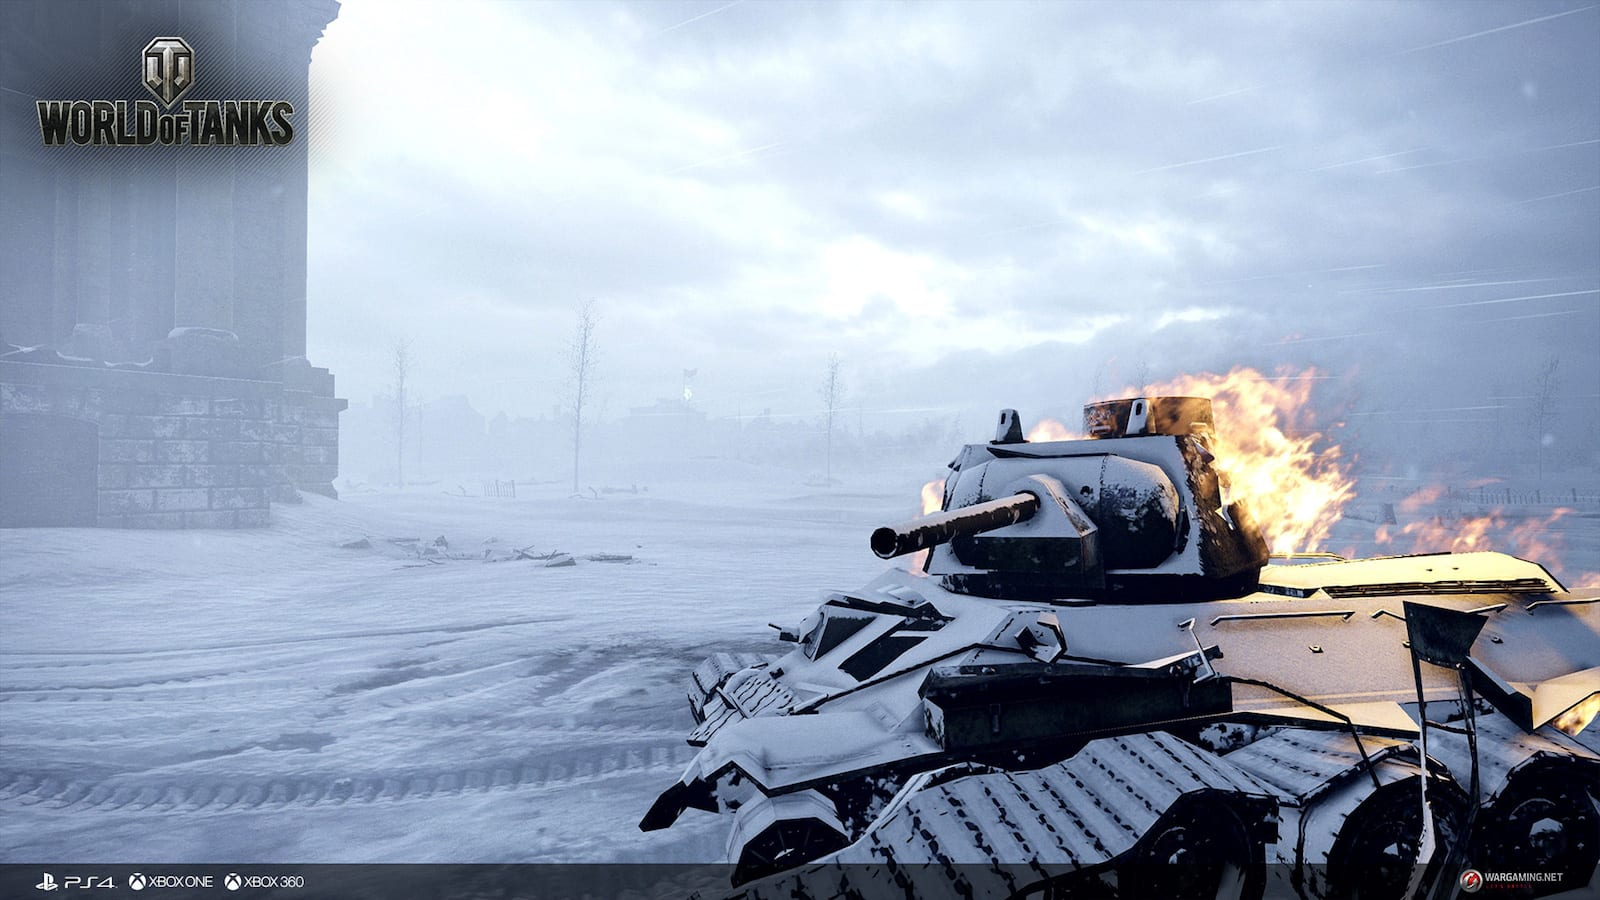 World of Tanks' adds single-player campaigns on August 22nd